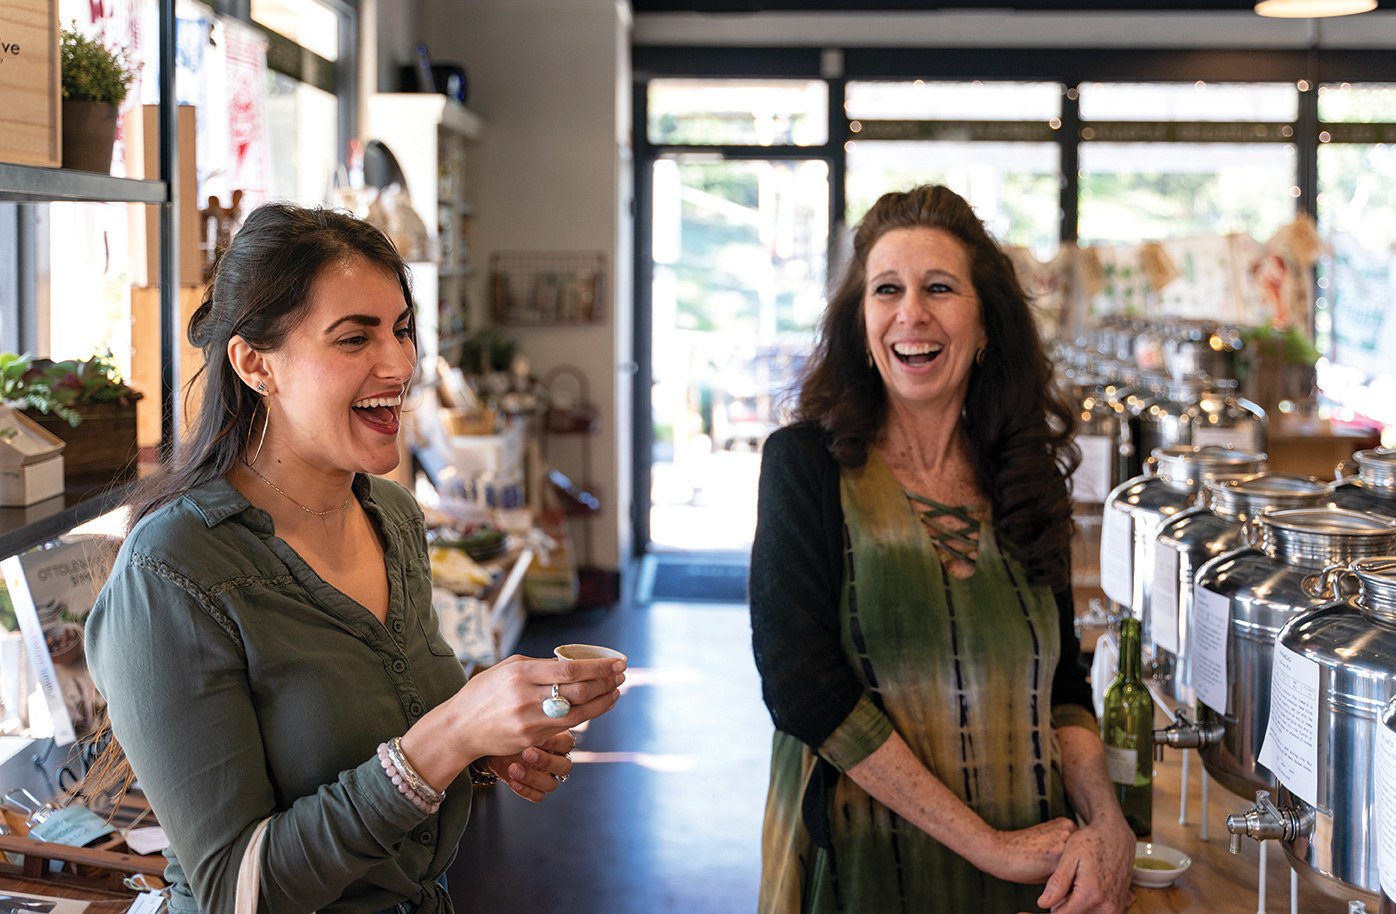 marina qutab baker and olive encinitas olive oil san diego zero waste